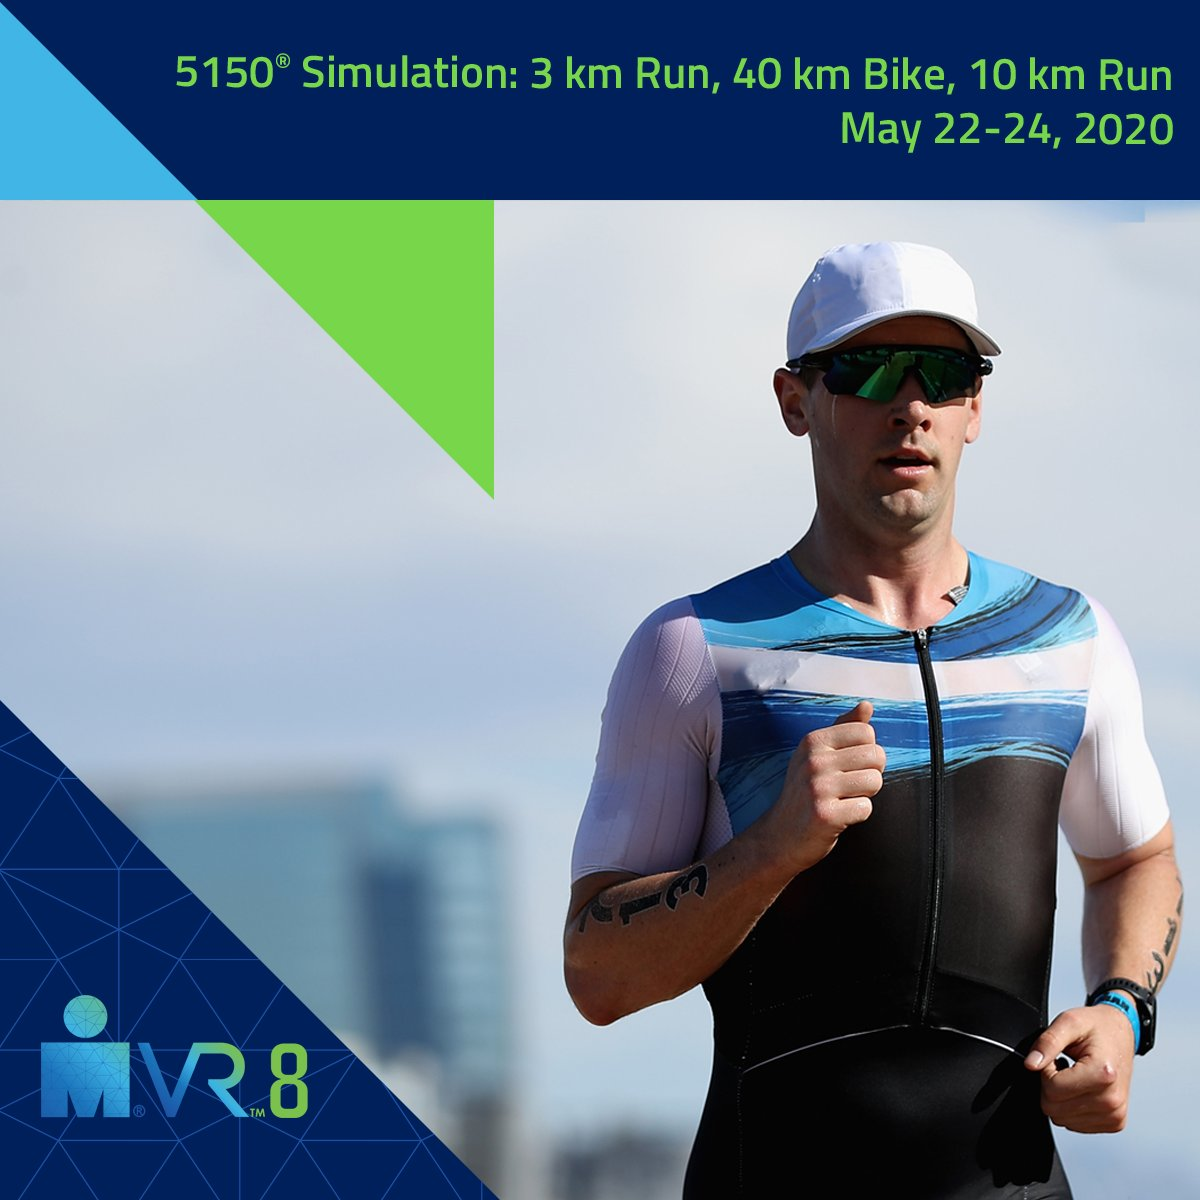 Theres STILL TIME to register for #IRONMANVR8 and complete the distances. With just over 5 hours left to race and an average finish time of 2.5 hours, youve got enough hours left in the day to lace up those shoes and hop on that bike to earn your badge. ironmanvirtualclub.com